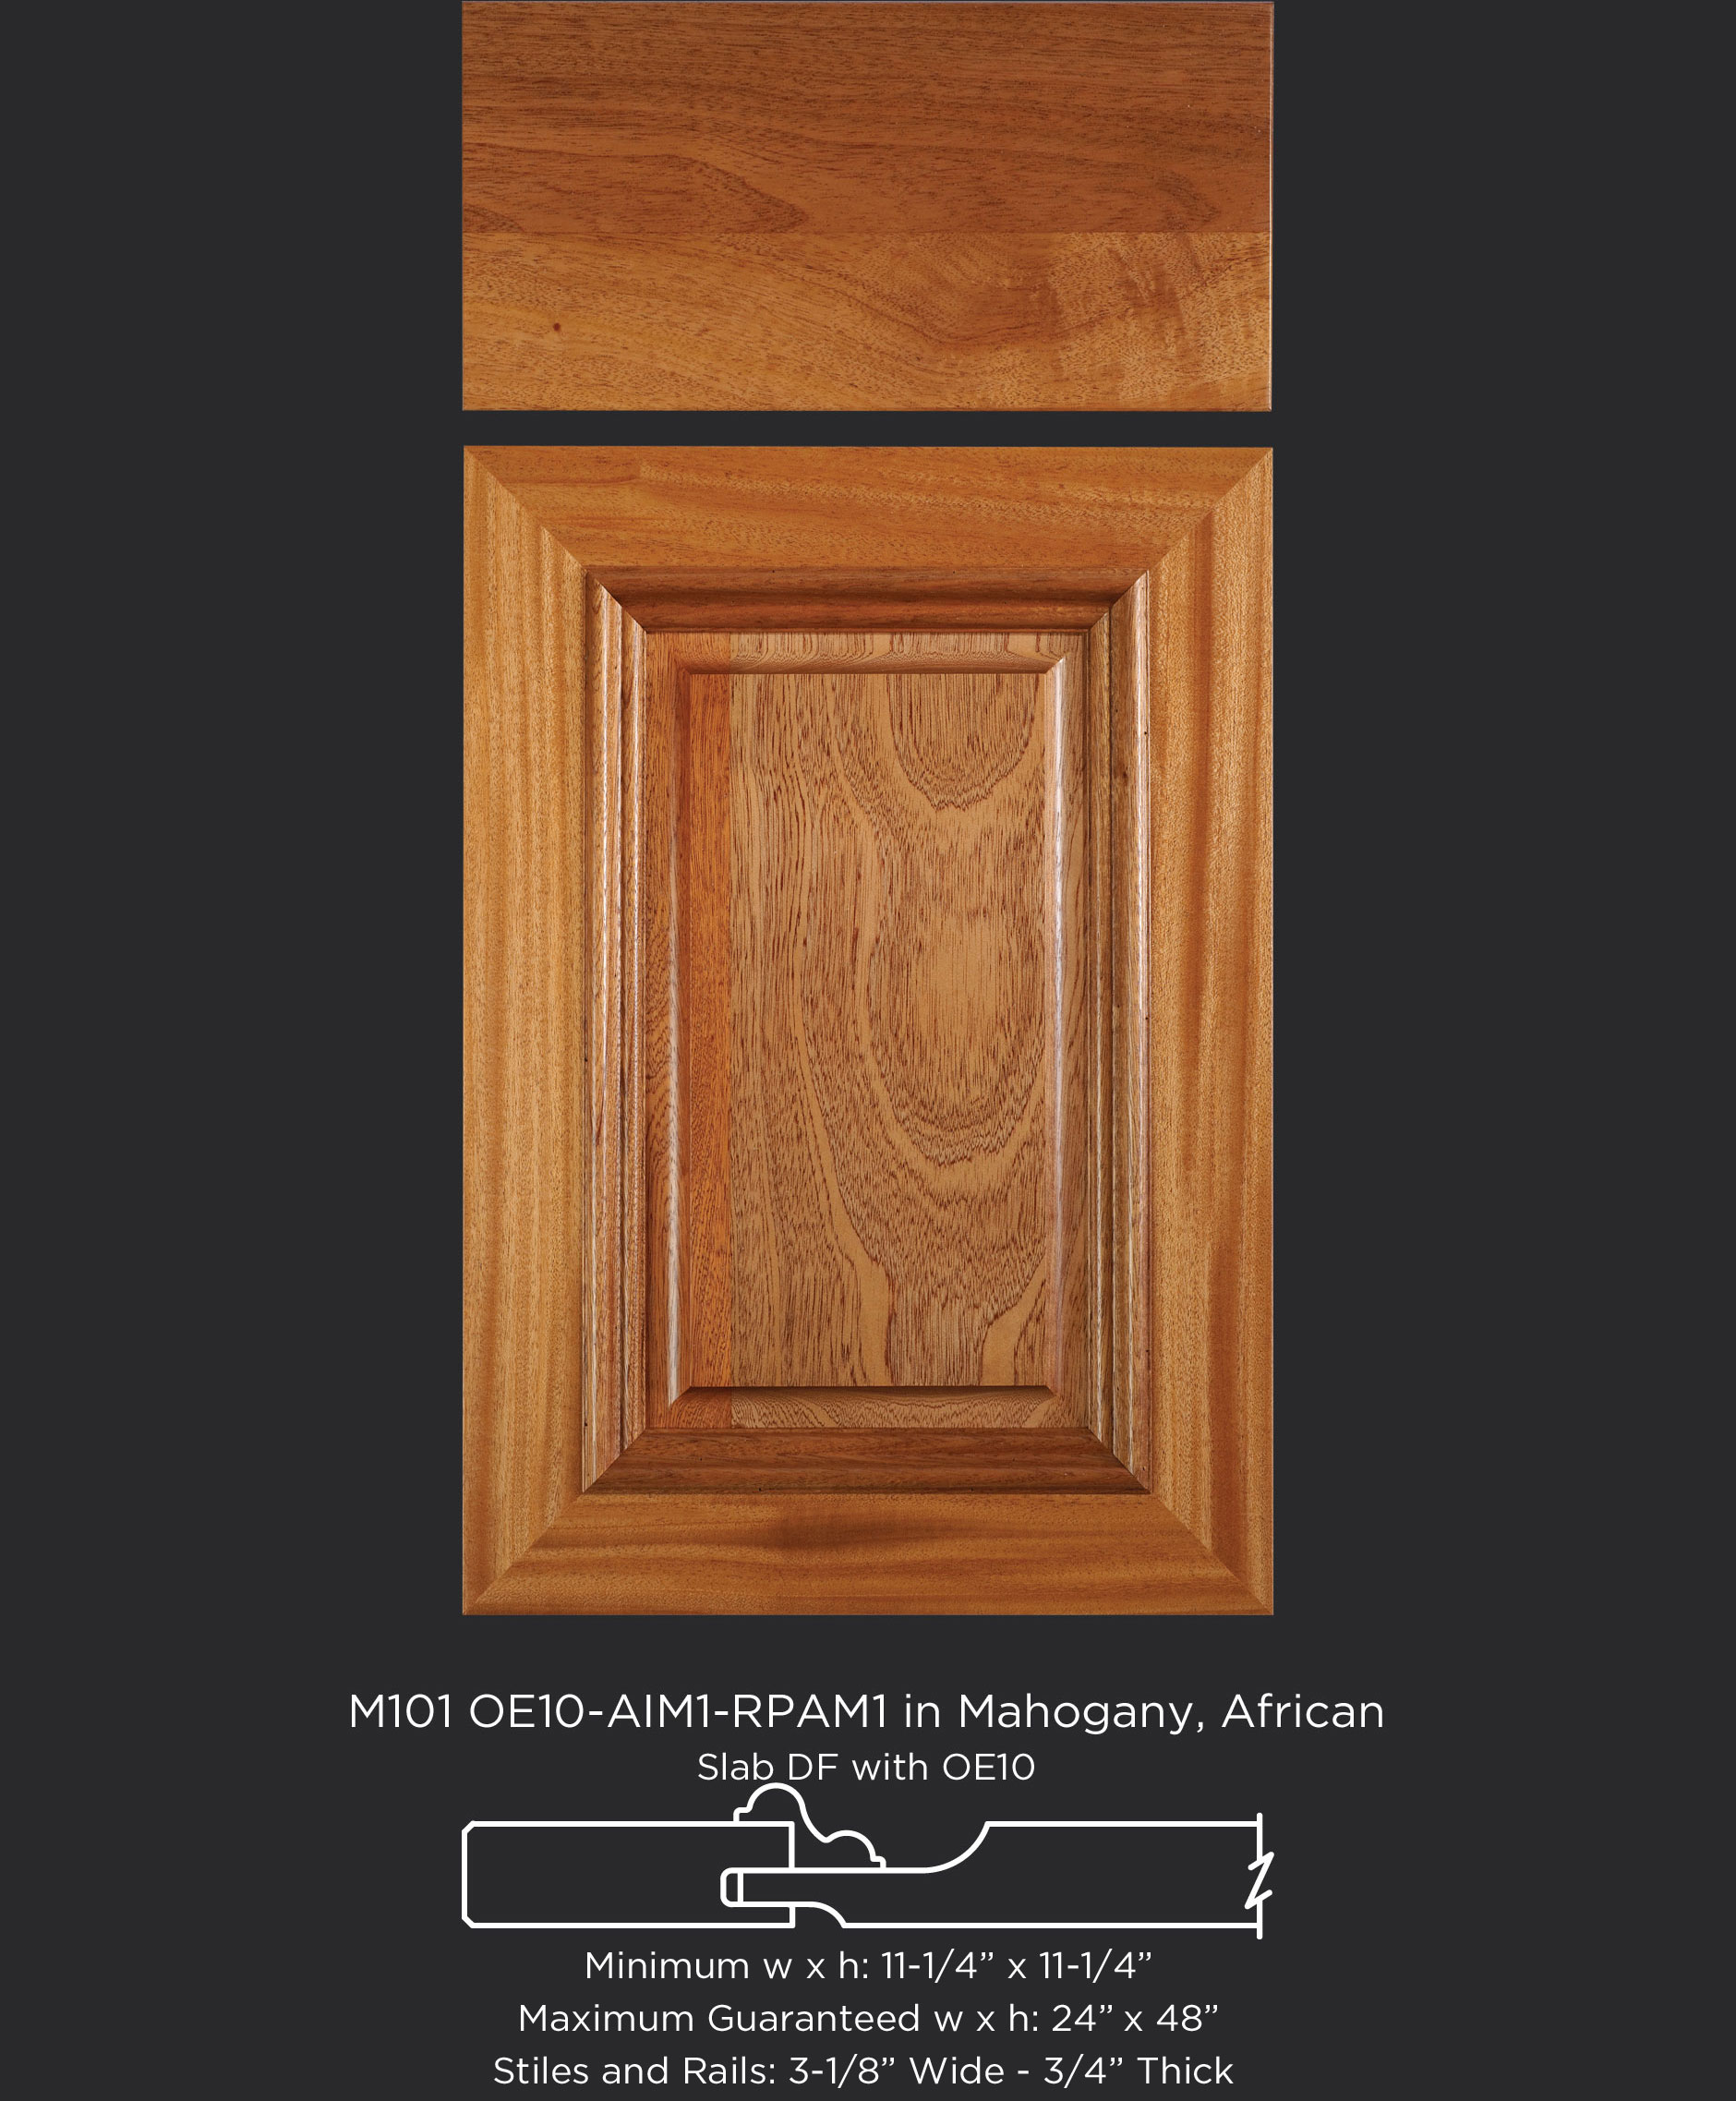 Mitered Cabinet Door M101 OE10-RPAM1-AIM1 in Mahogany, African - Slab drawer front with OE10